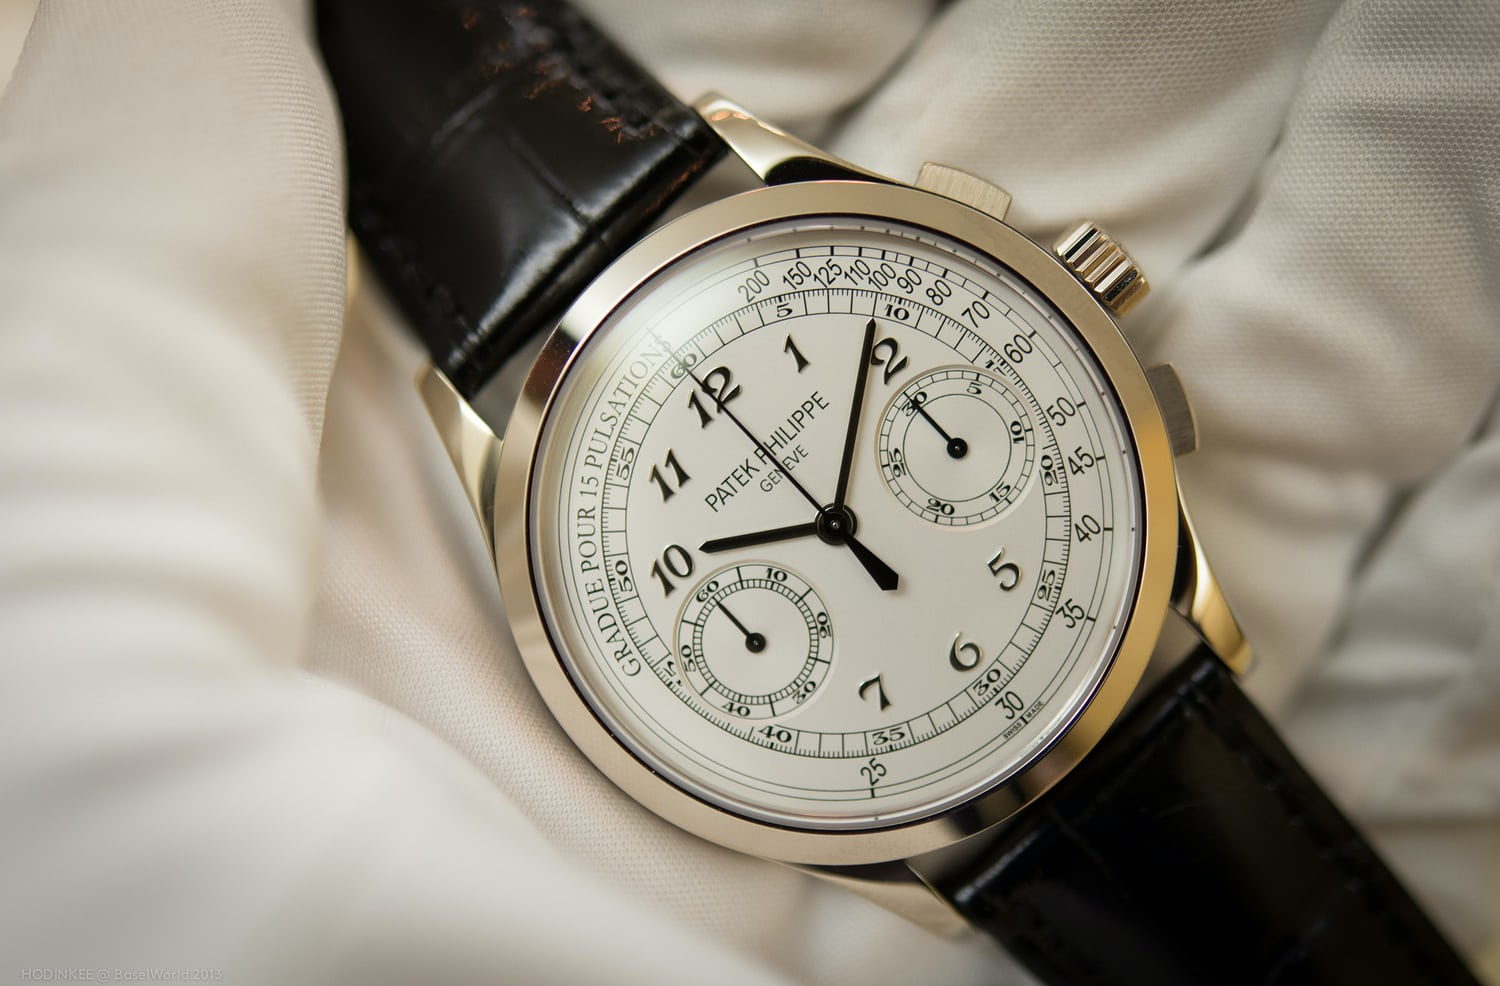 Introducing The Patek Philippe 5170g Today S Patek Chrono Now